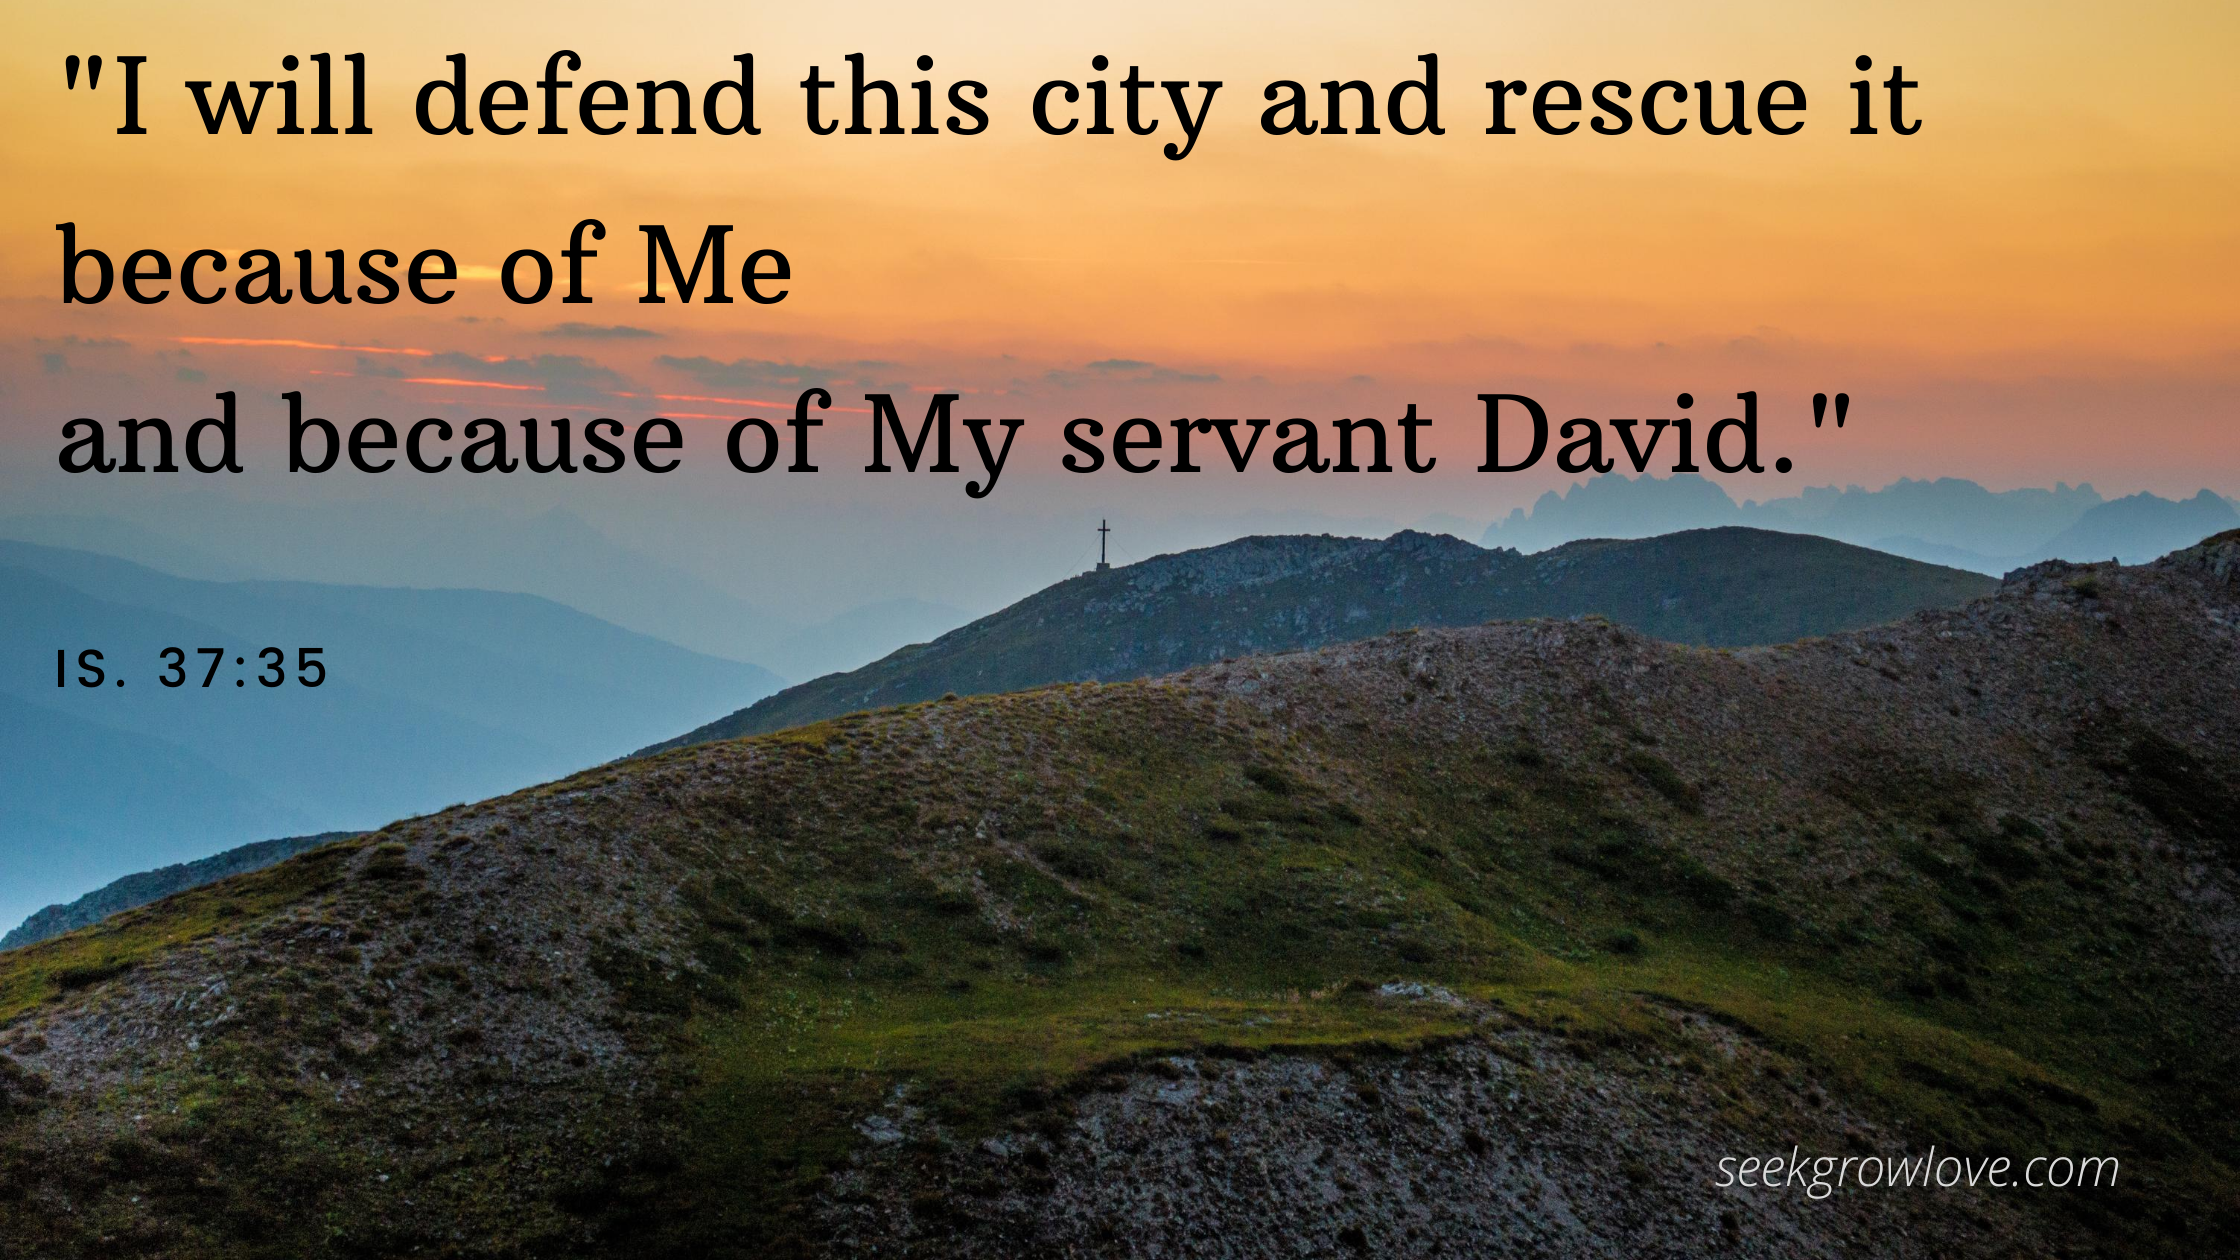 I will defend this city and rescue it because of Me and because of My servant David._